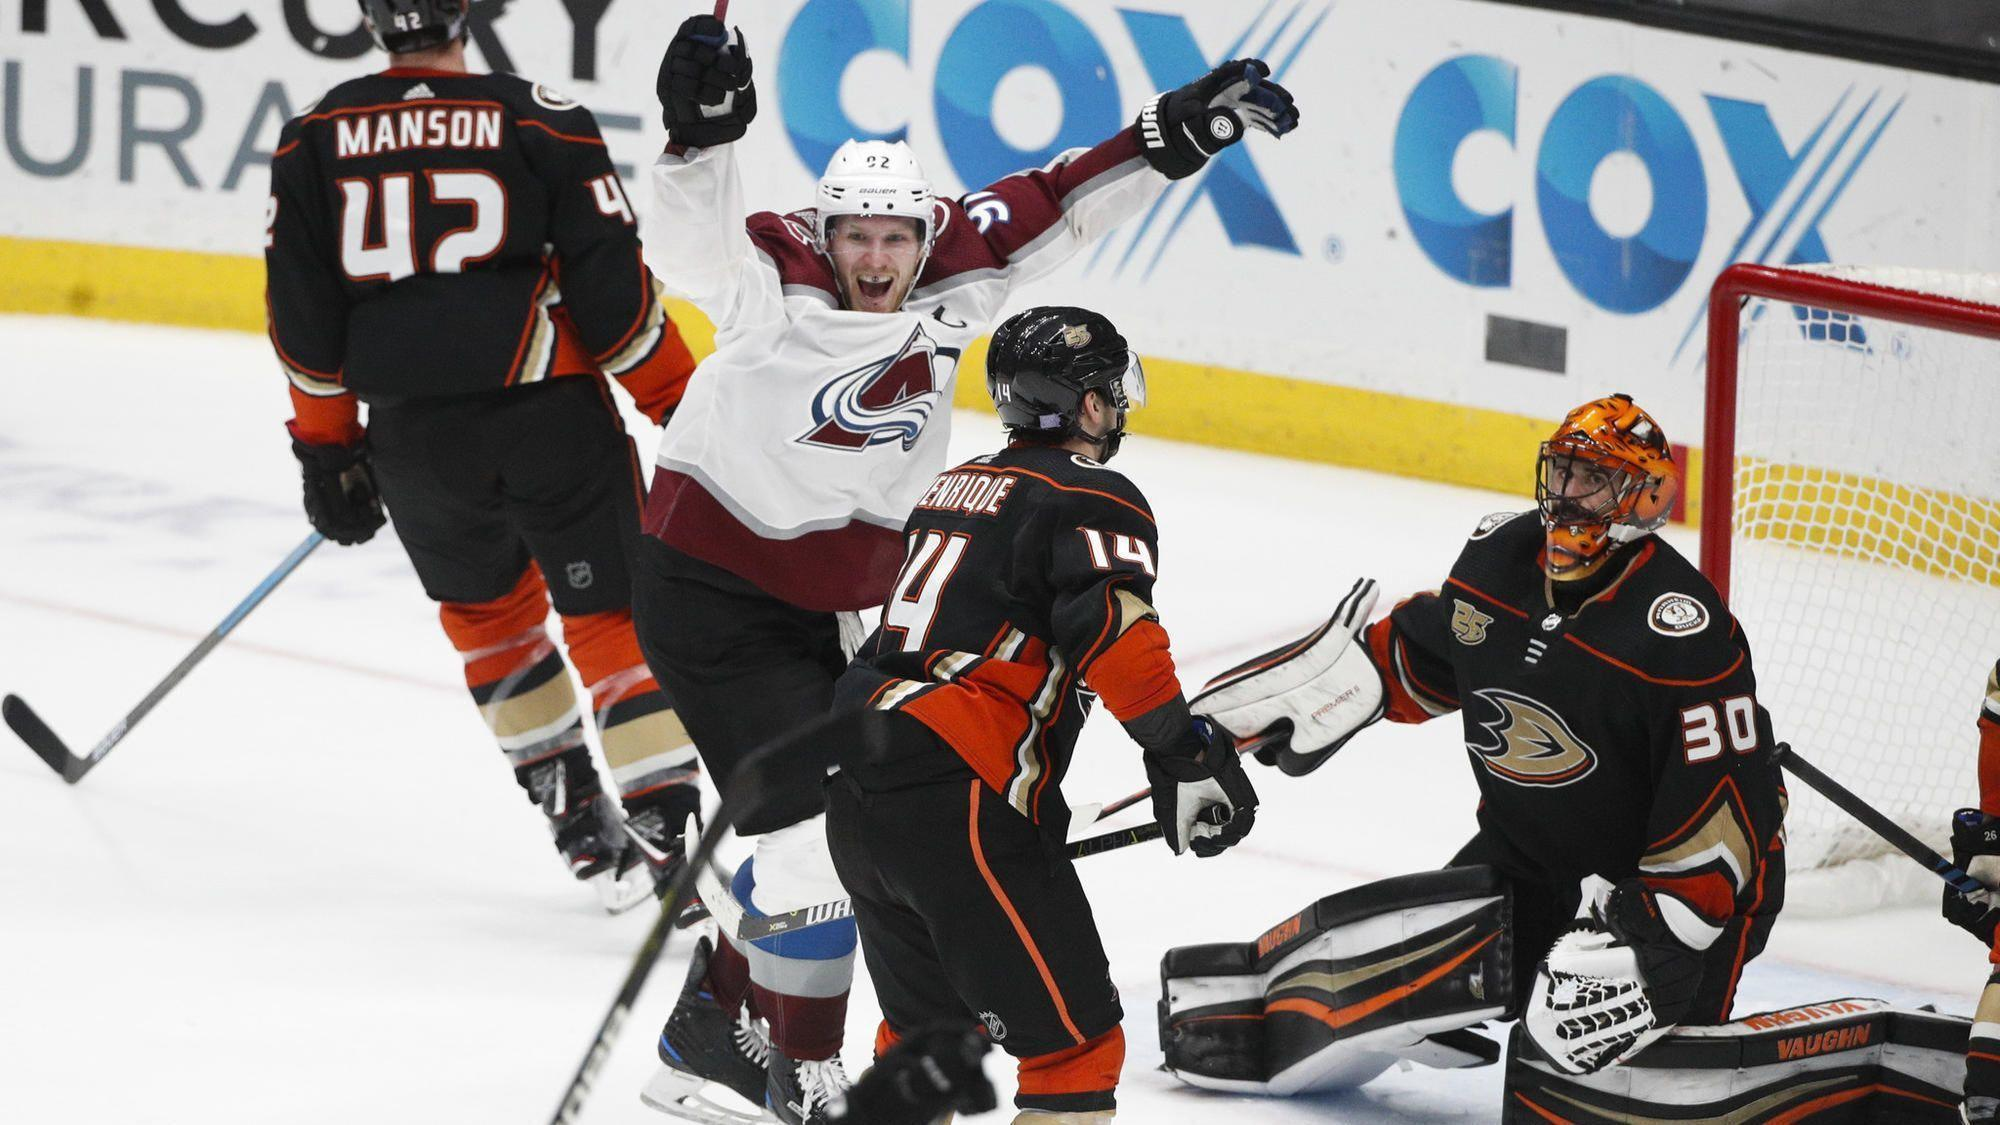 What we learned in the NHL last week: The Ducks are hurting in more ways than one